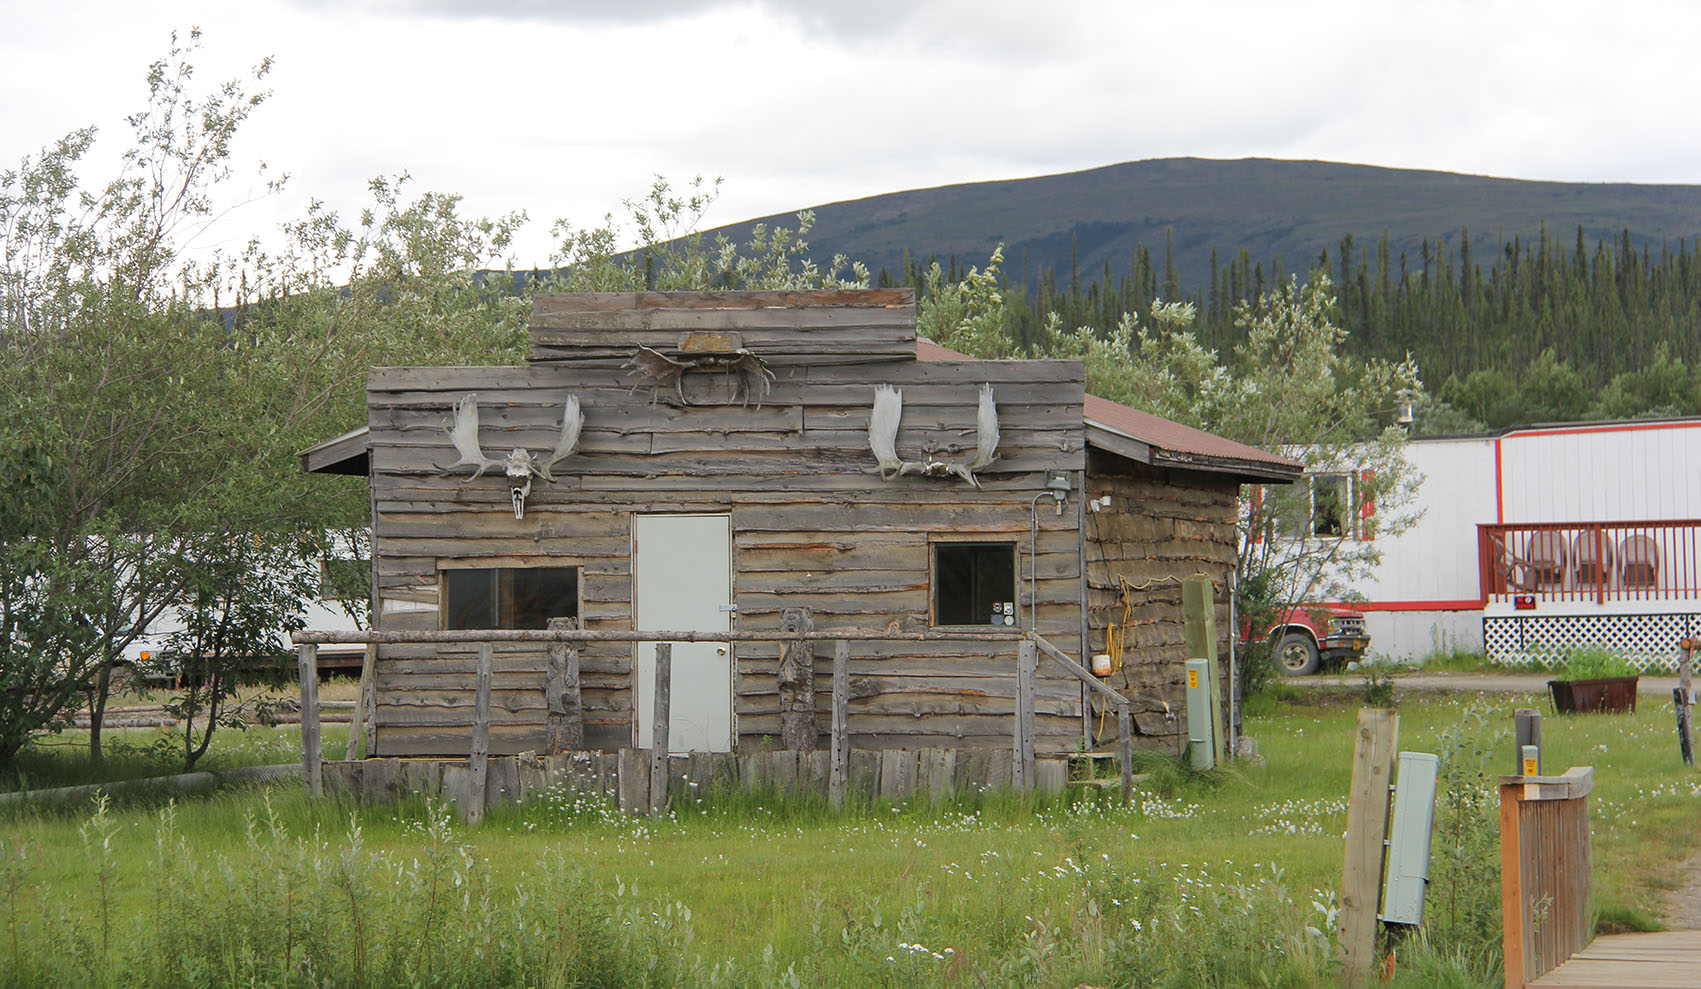 One of the early Coldfoot buildings.